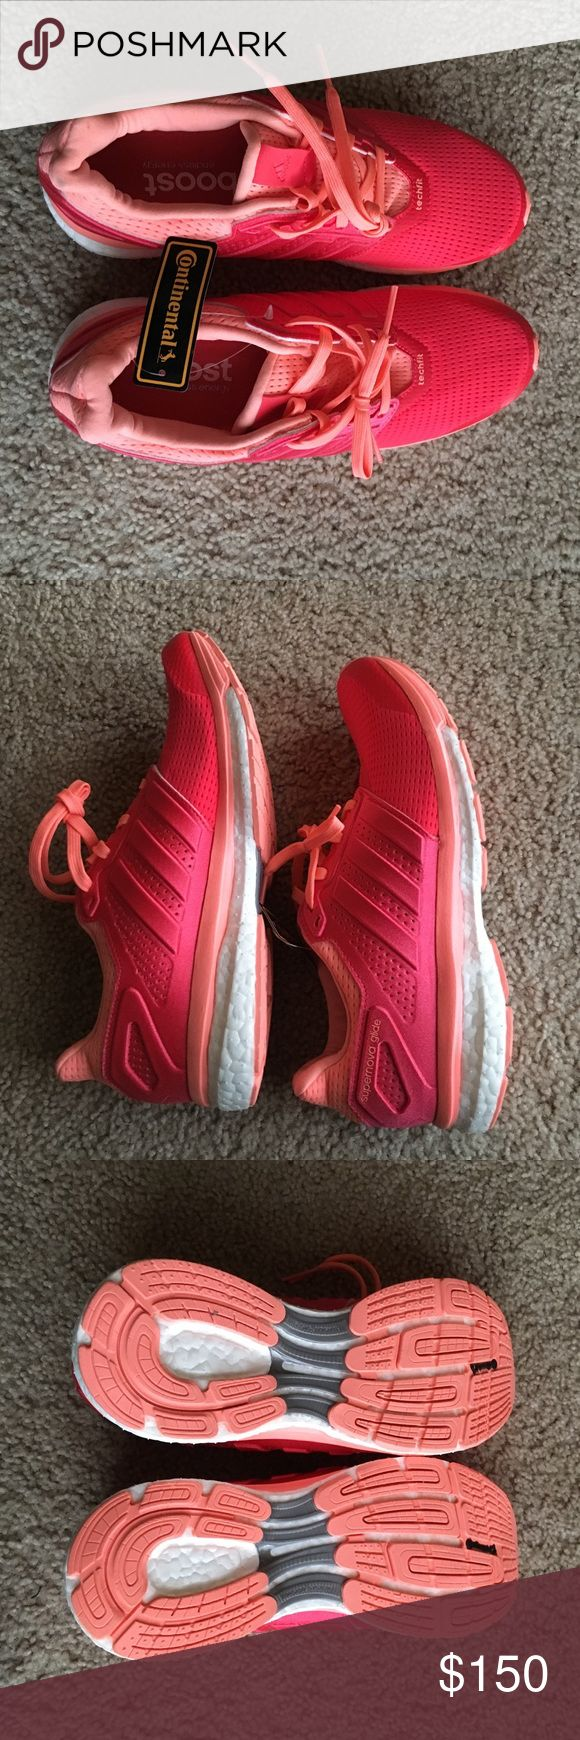 NWT Adidas Boost Shoes Brand new with tags adidas boost running shoes. Never been worn and in perfect condition. Feel free to make an offer and i can try to work with you! Adidas Shoes Athletic Shoes